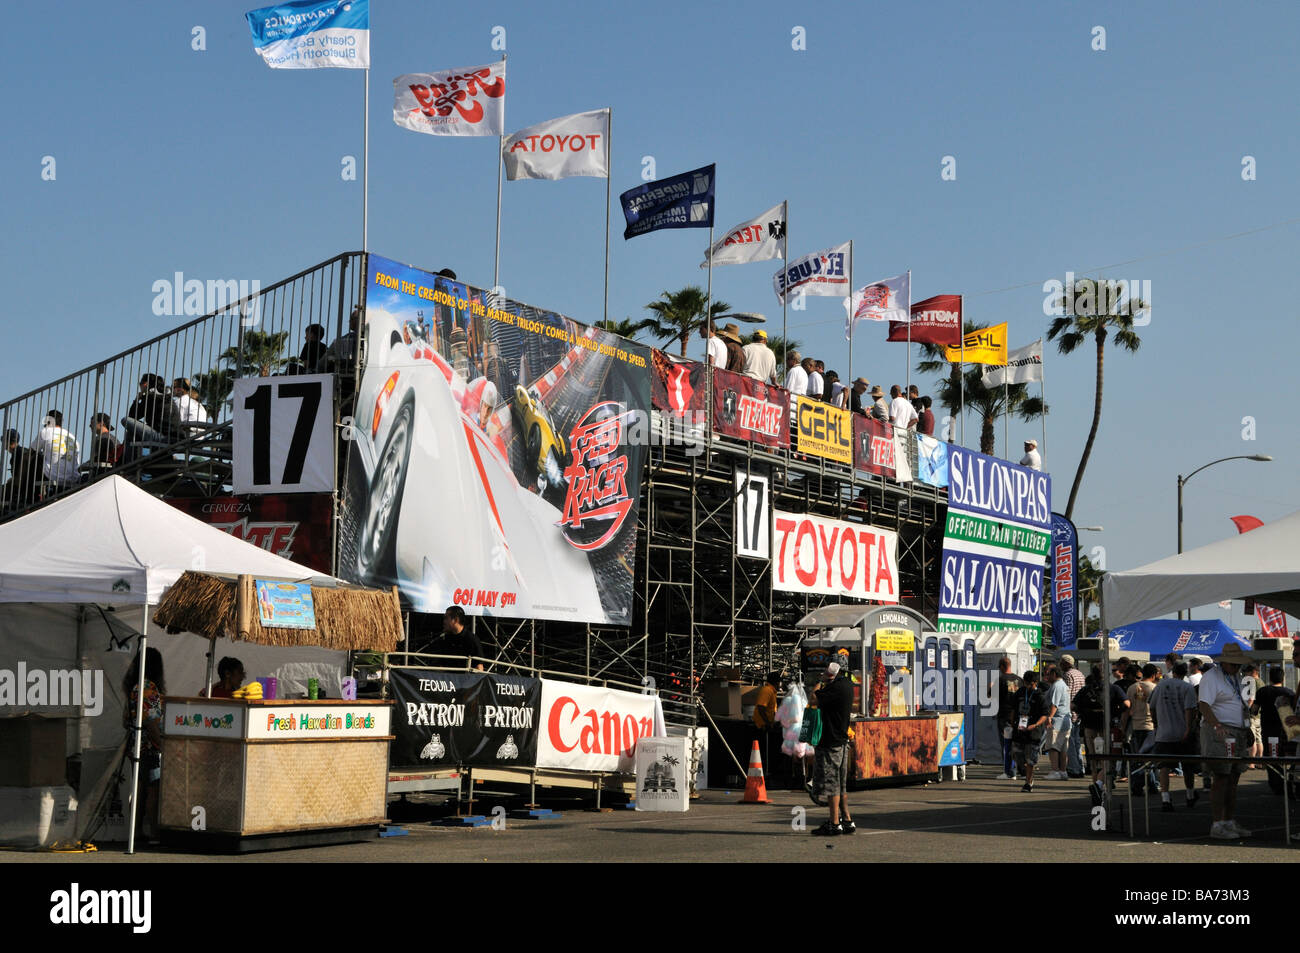 Backside of bleachers showcasing promotional banners - Stock Image